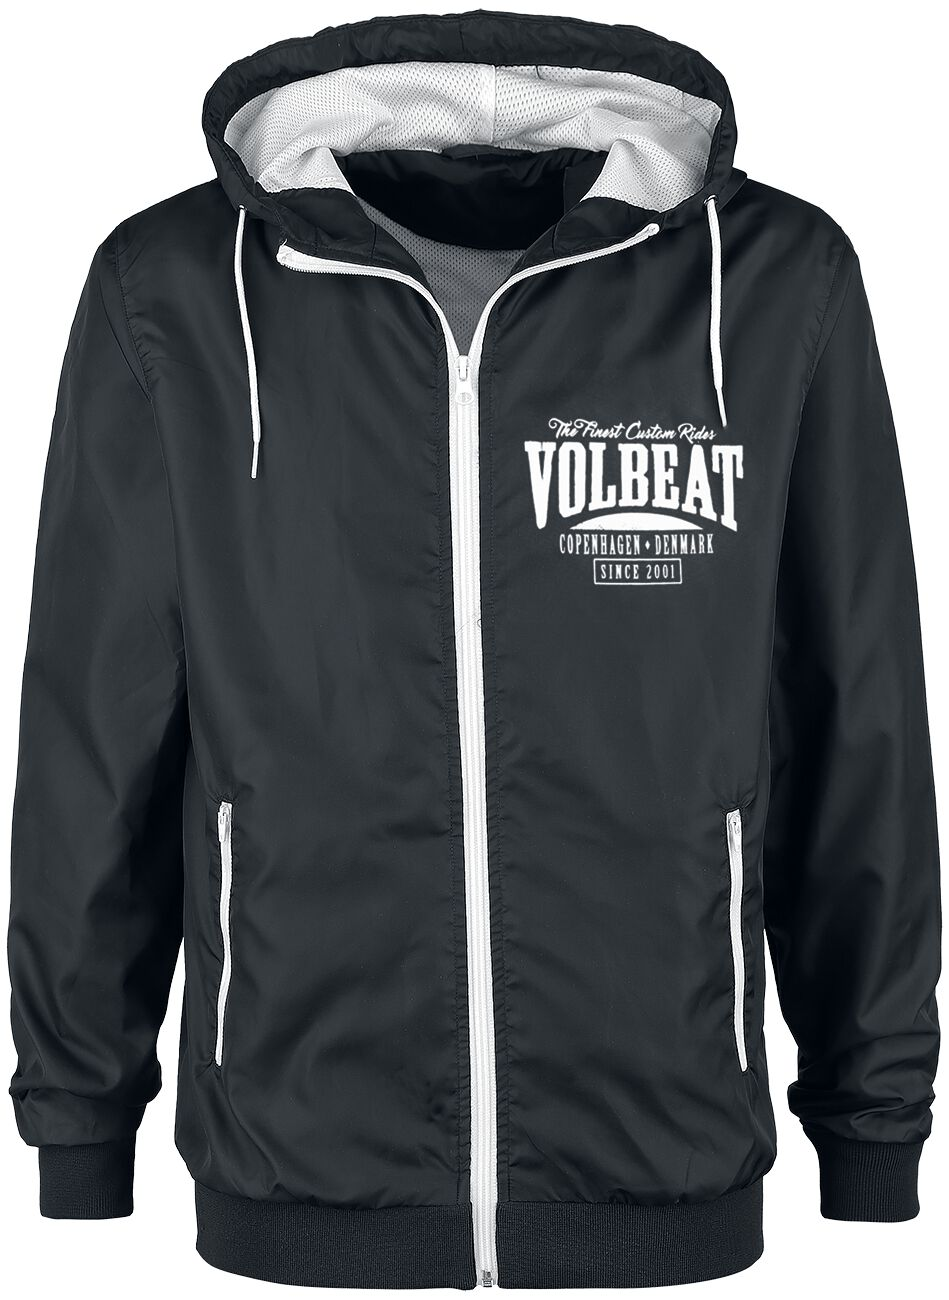 Image of   Volbeat Louder And Faster Windbreaker sort-hvid